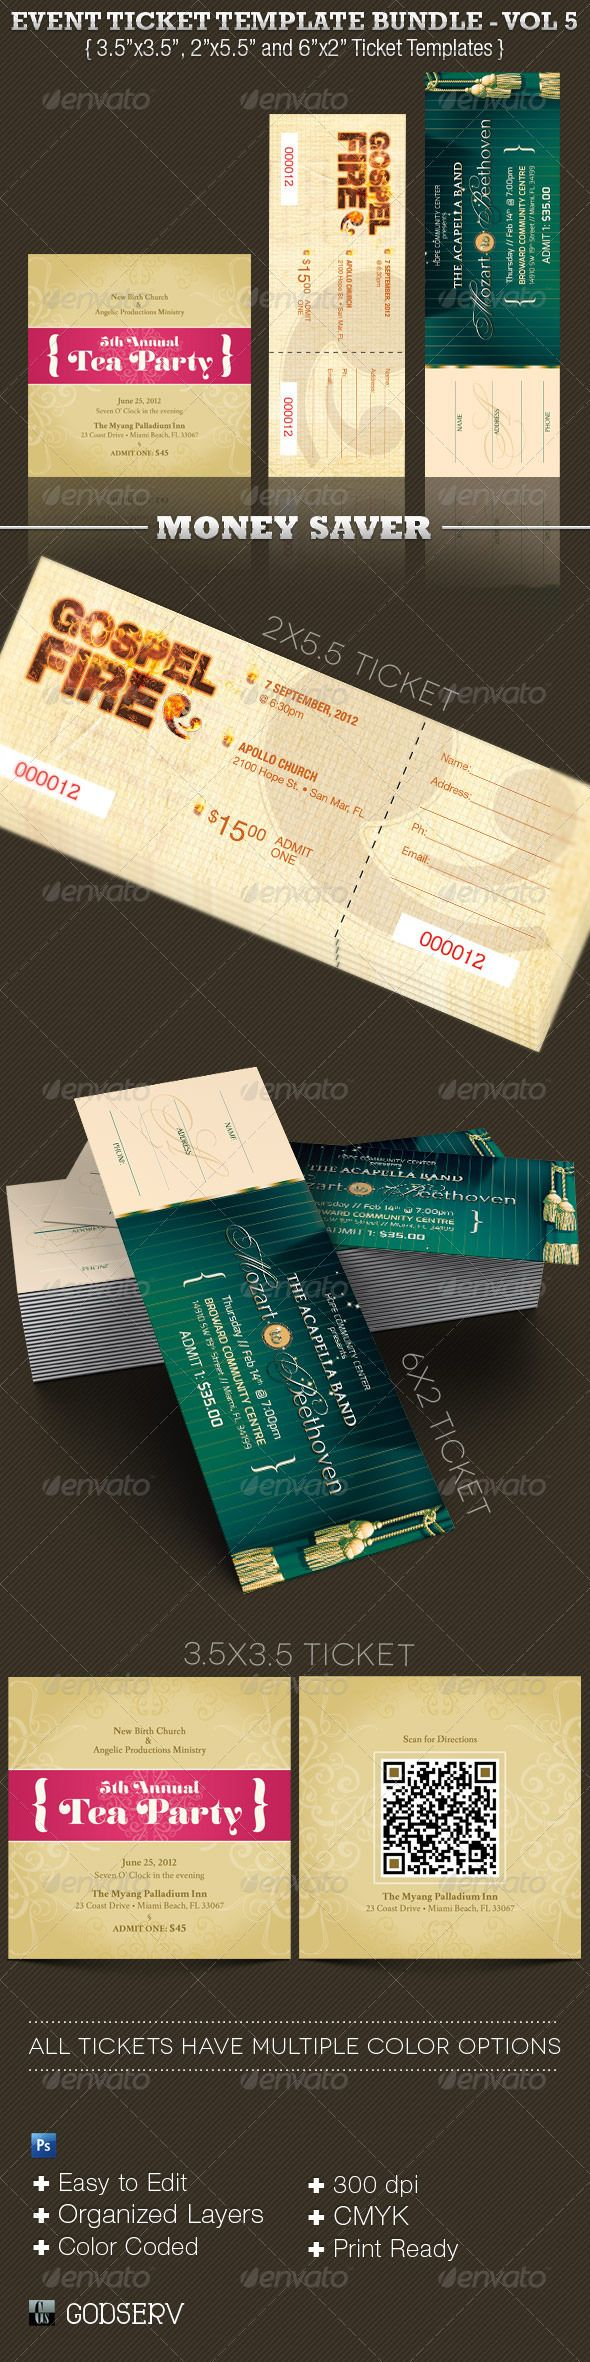 17 best images about ticket designs basketball baby event ticket template bundle vol 5